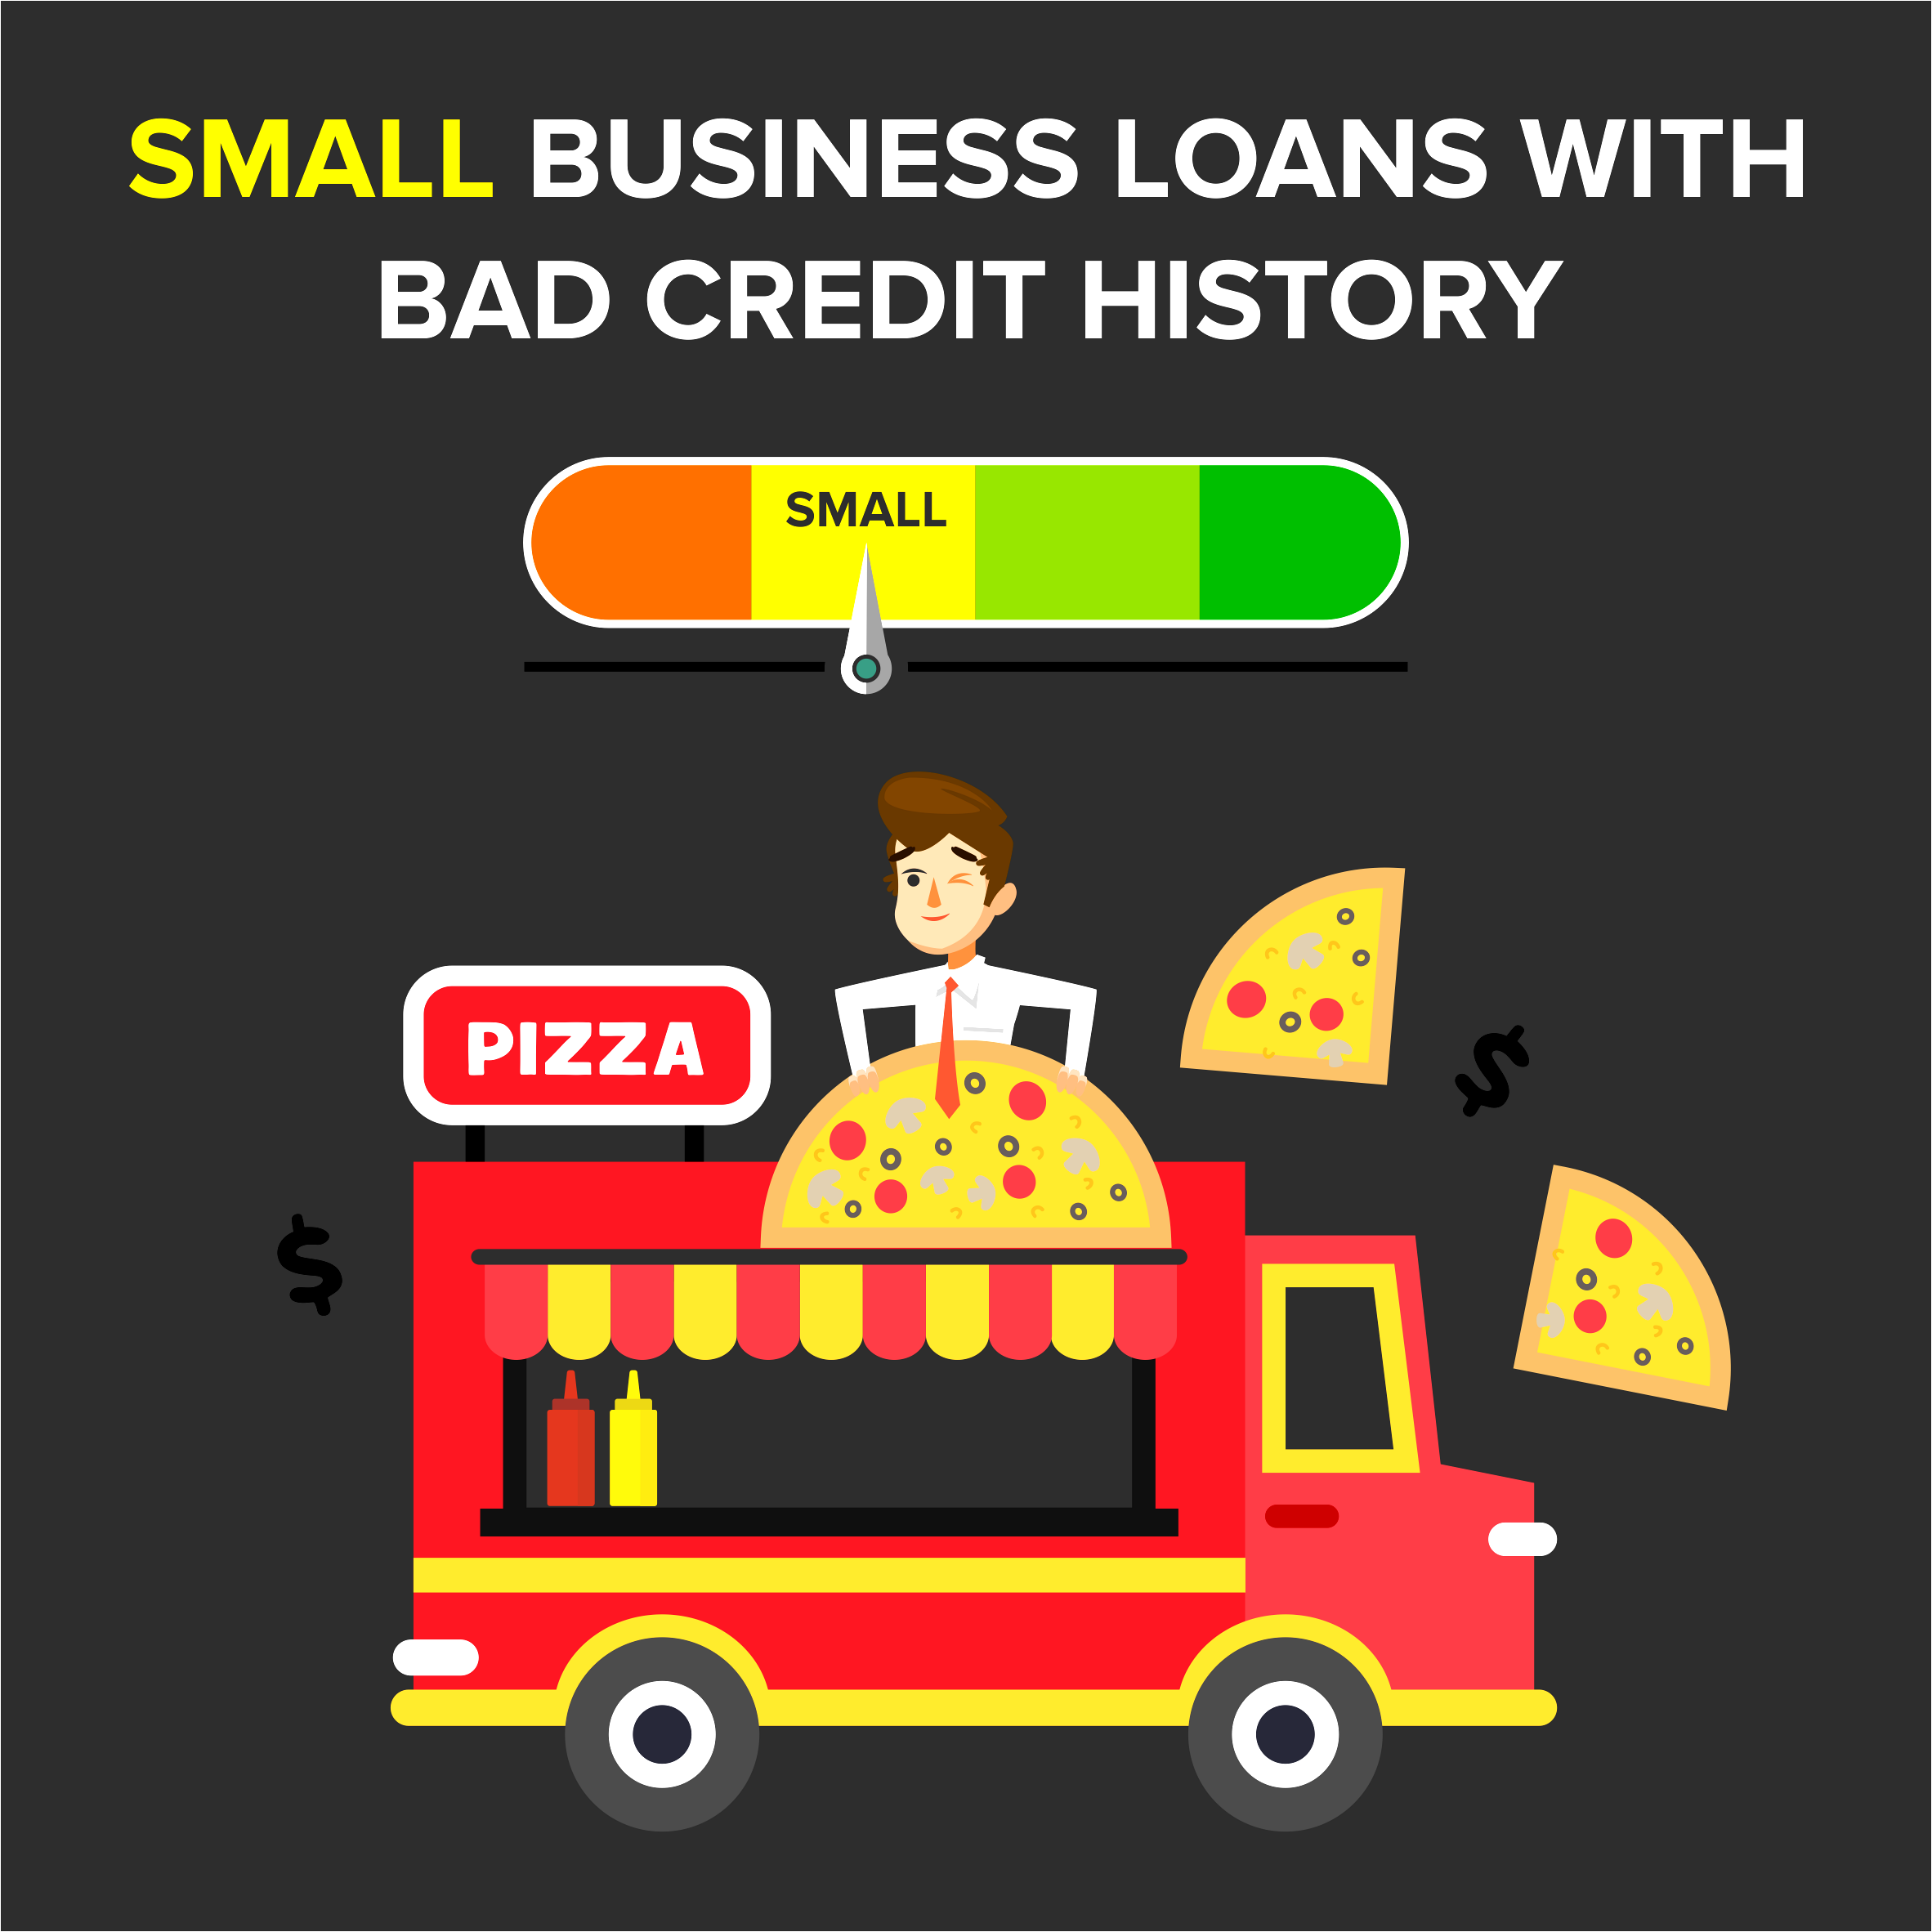 Small Business Loans With Bad Credit History